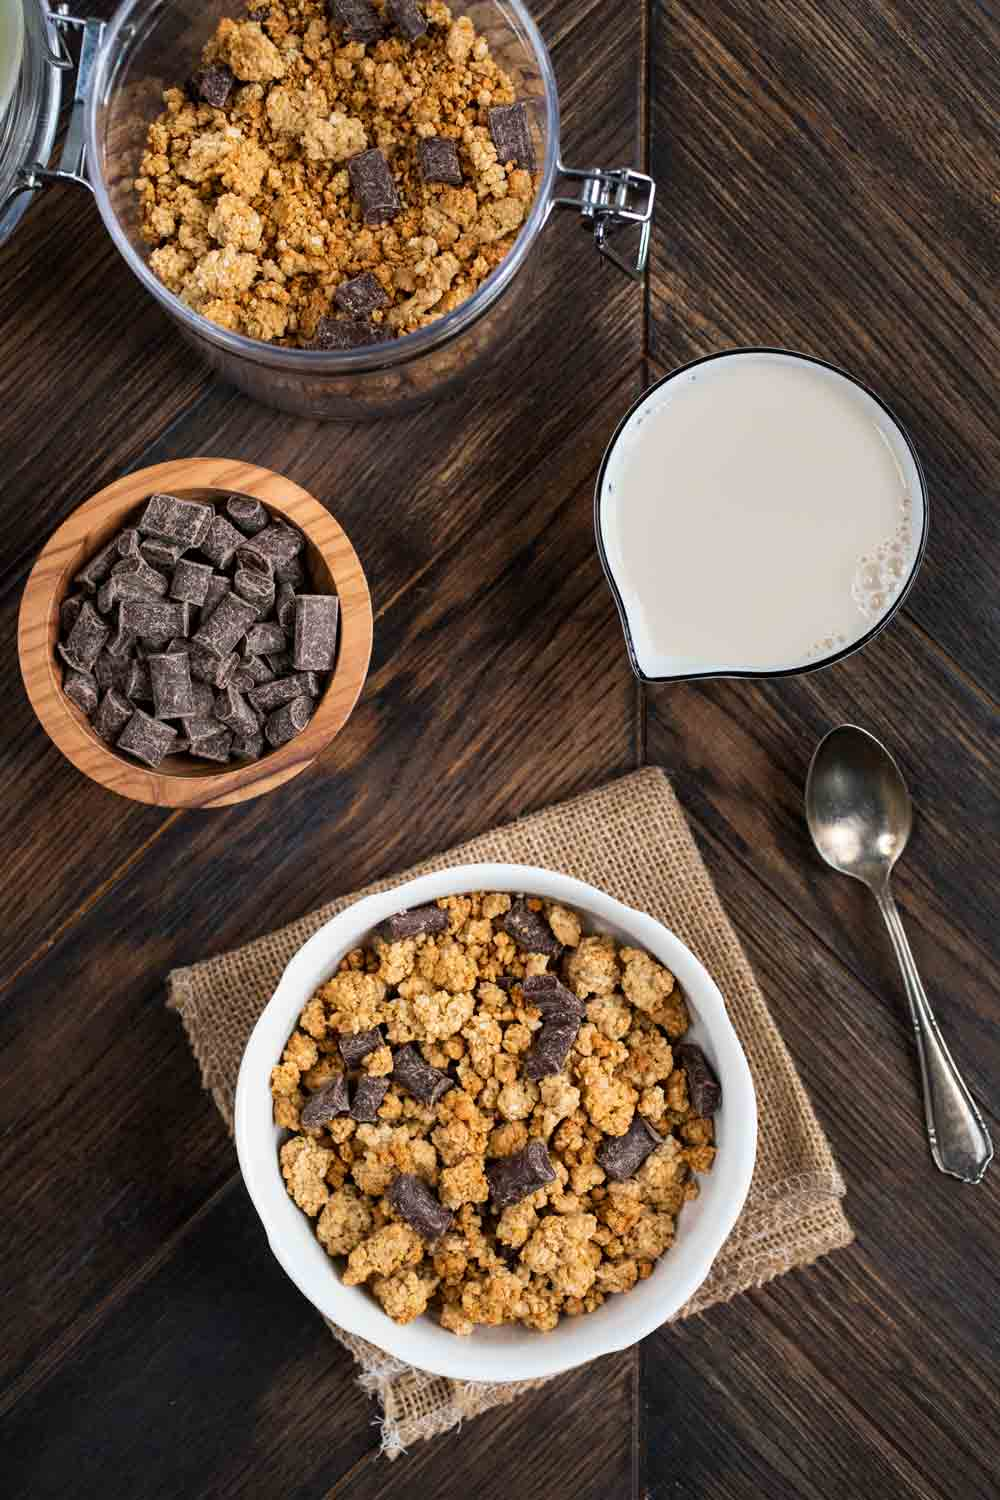 An overhead shot of a bowl of easy baked granola, a cup of milk, a spoon, and additional chocolate chunks in a small bowl.